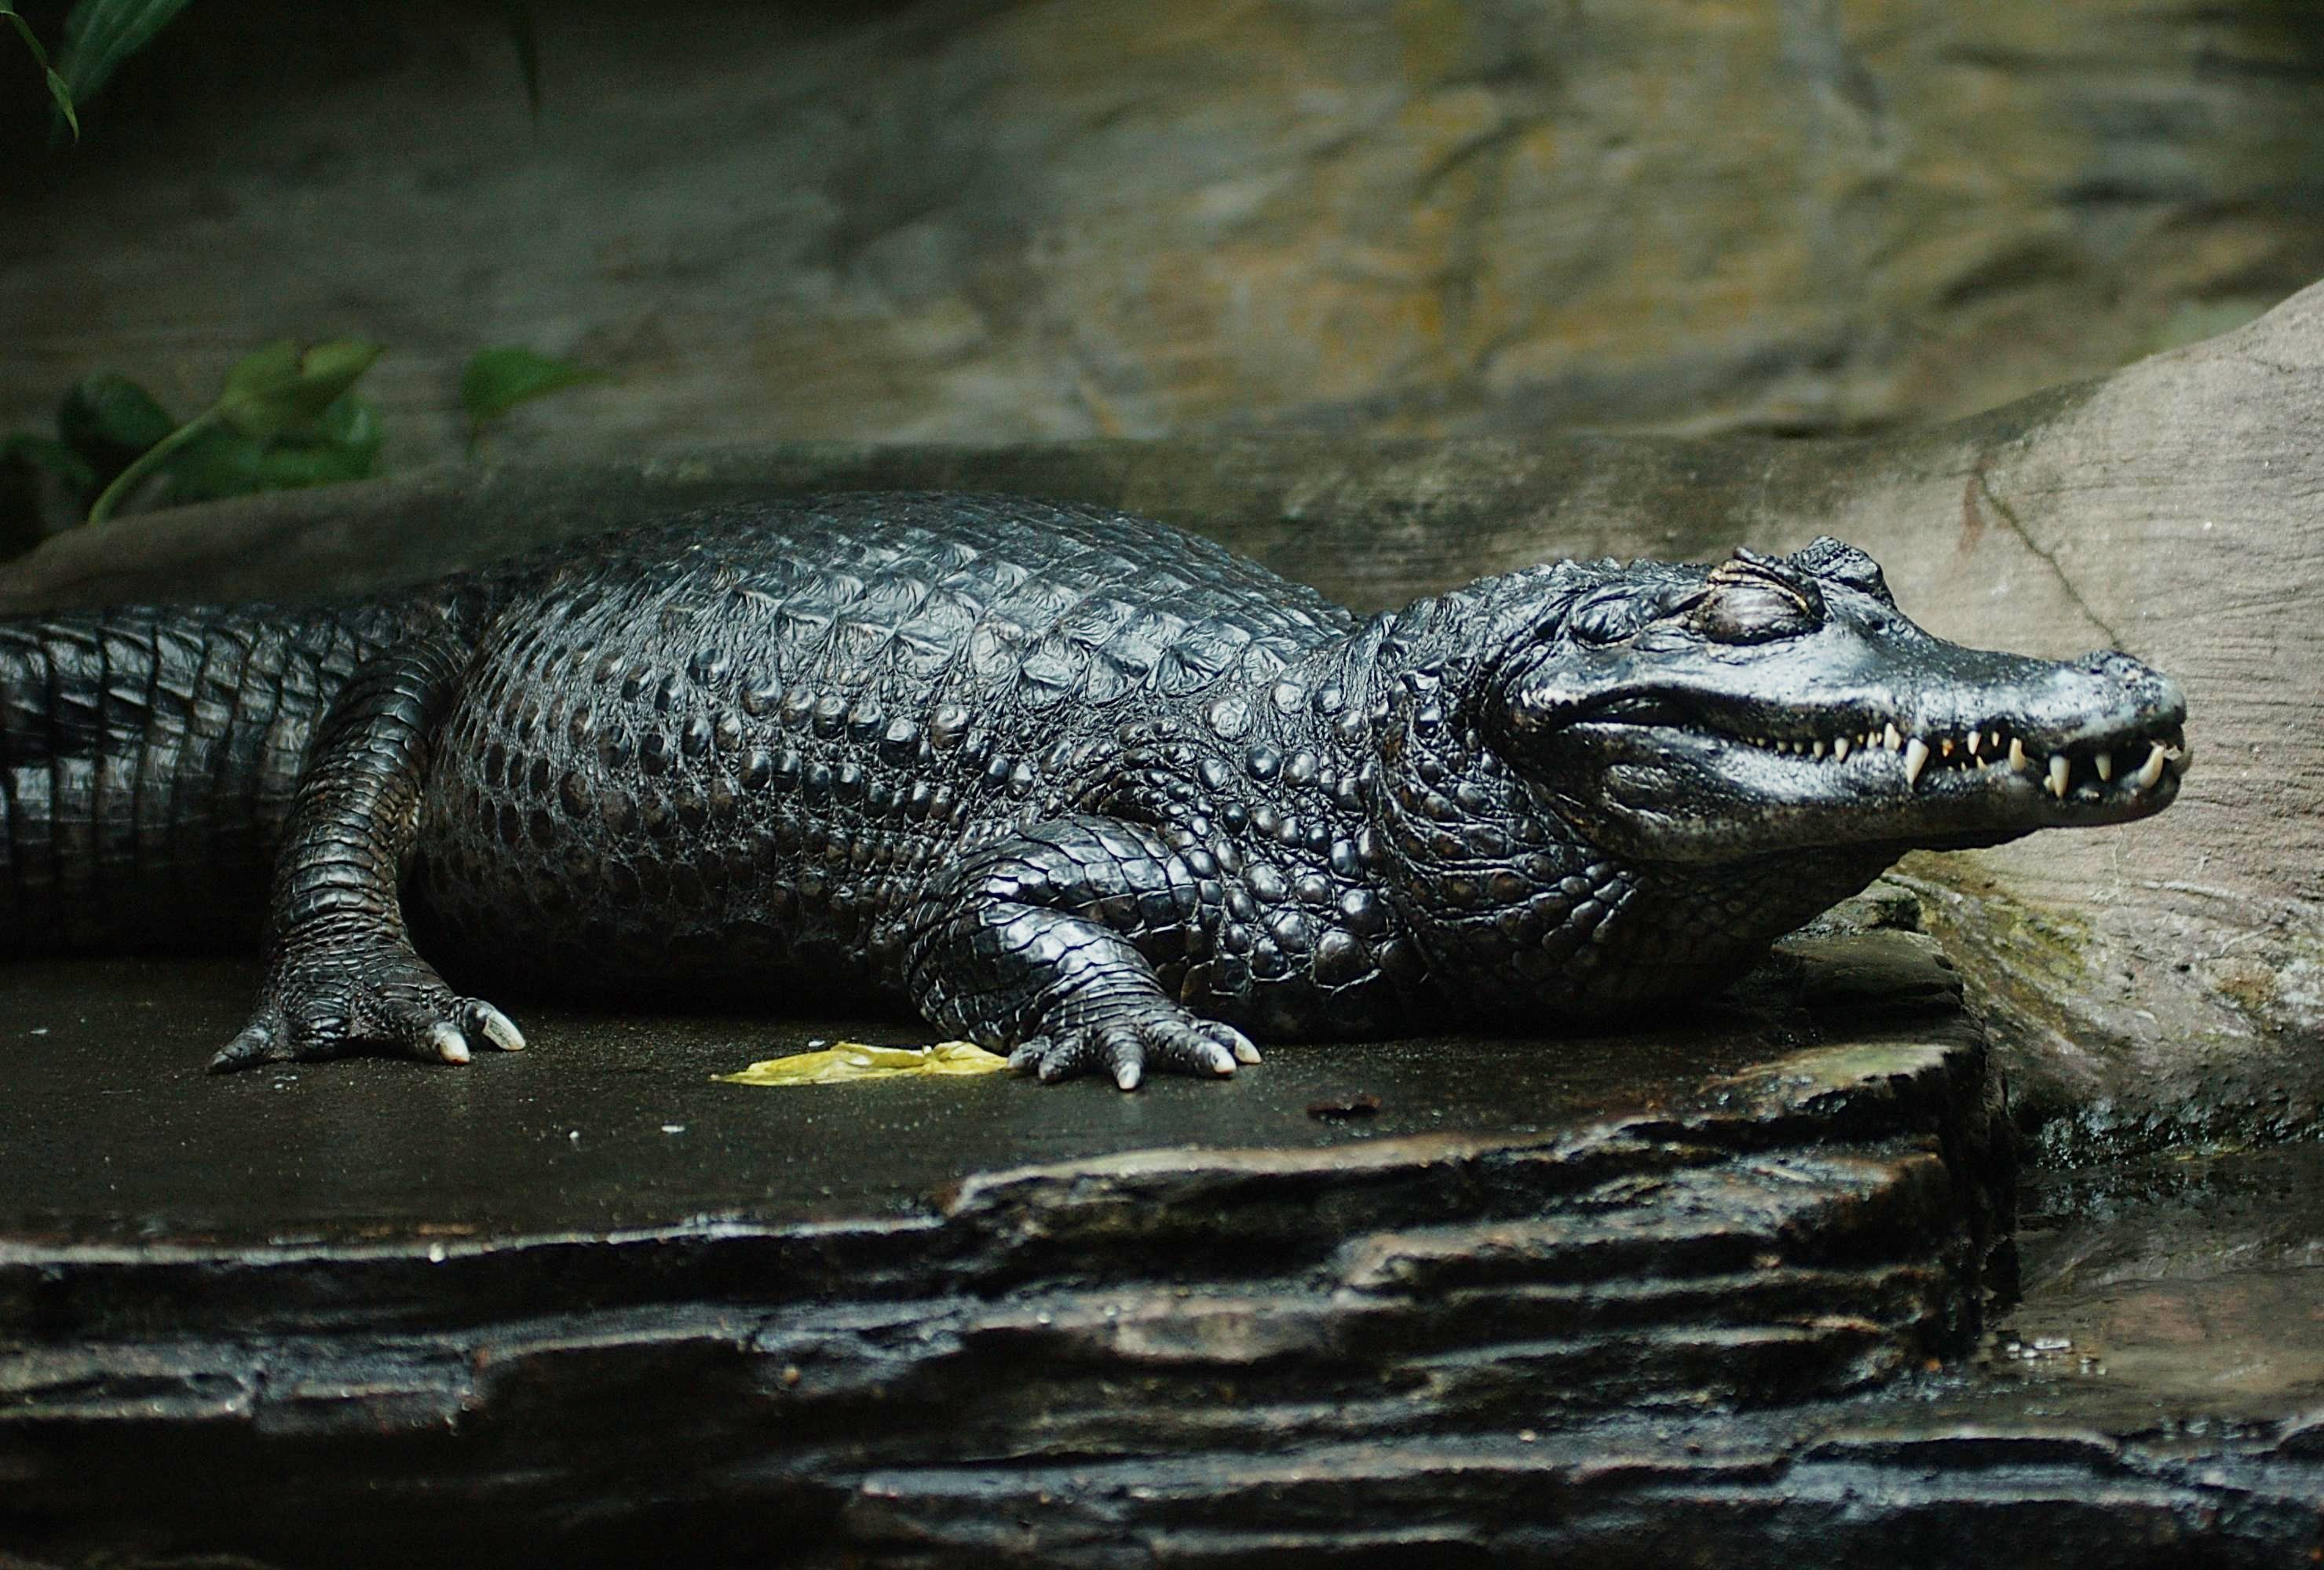 where do caimans live in the rainforest